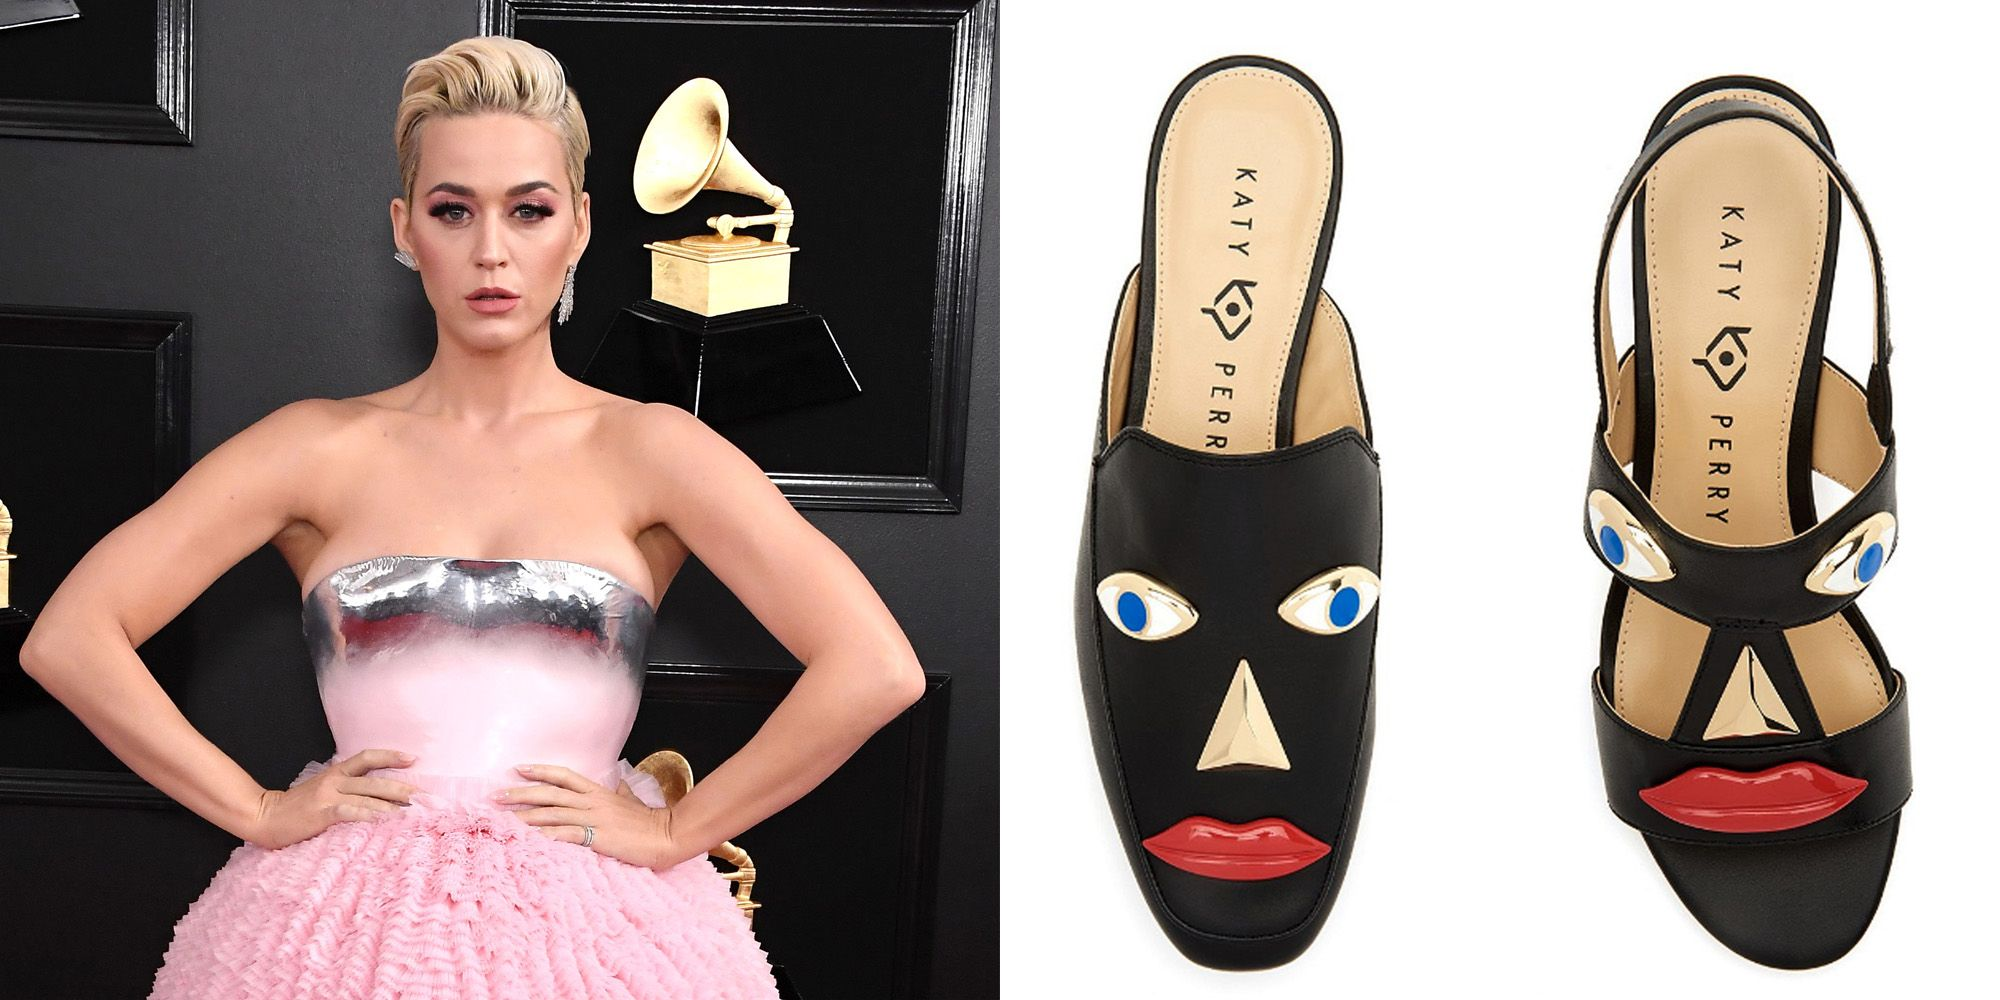 Katy Perry's Shoe Line Is Getting Backlash for Designs Resembling Blackface